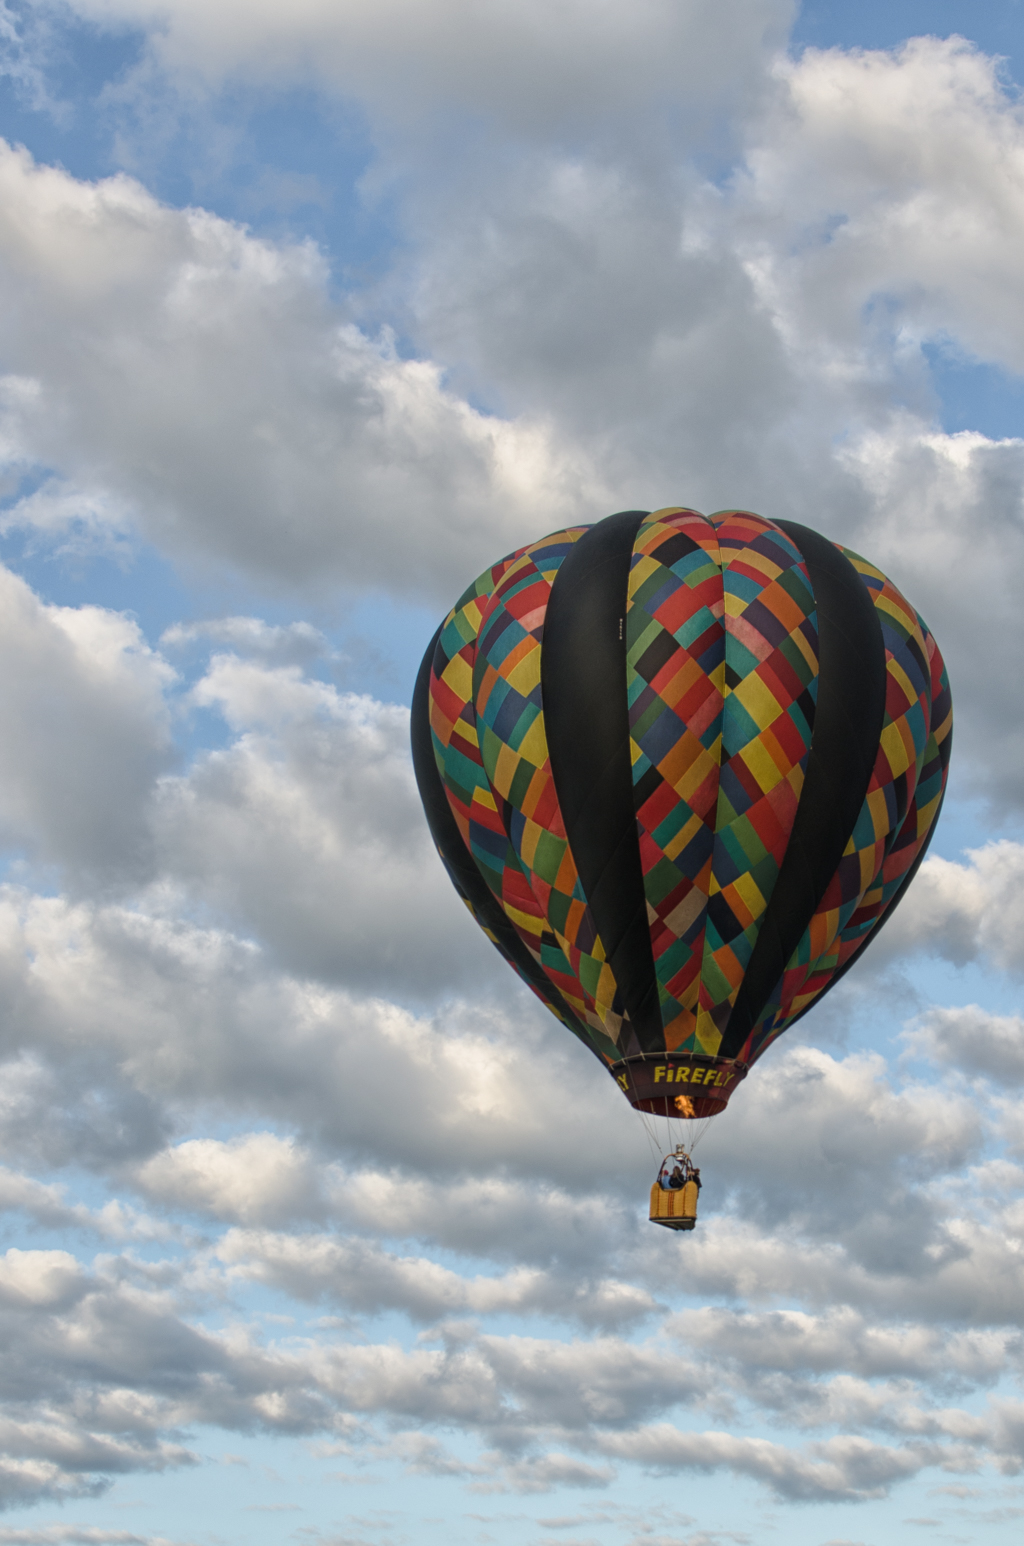 32nd annual New Jersey Festival of Ballooning, wpid14607 NIKON D5100 20140725 1090 Edit 2